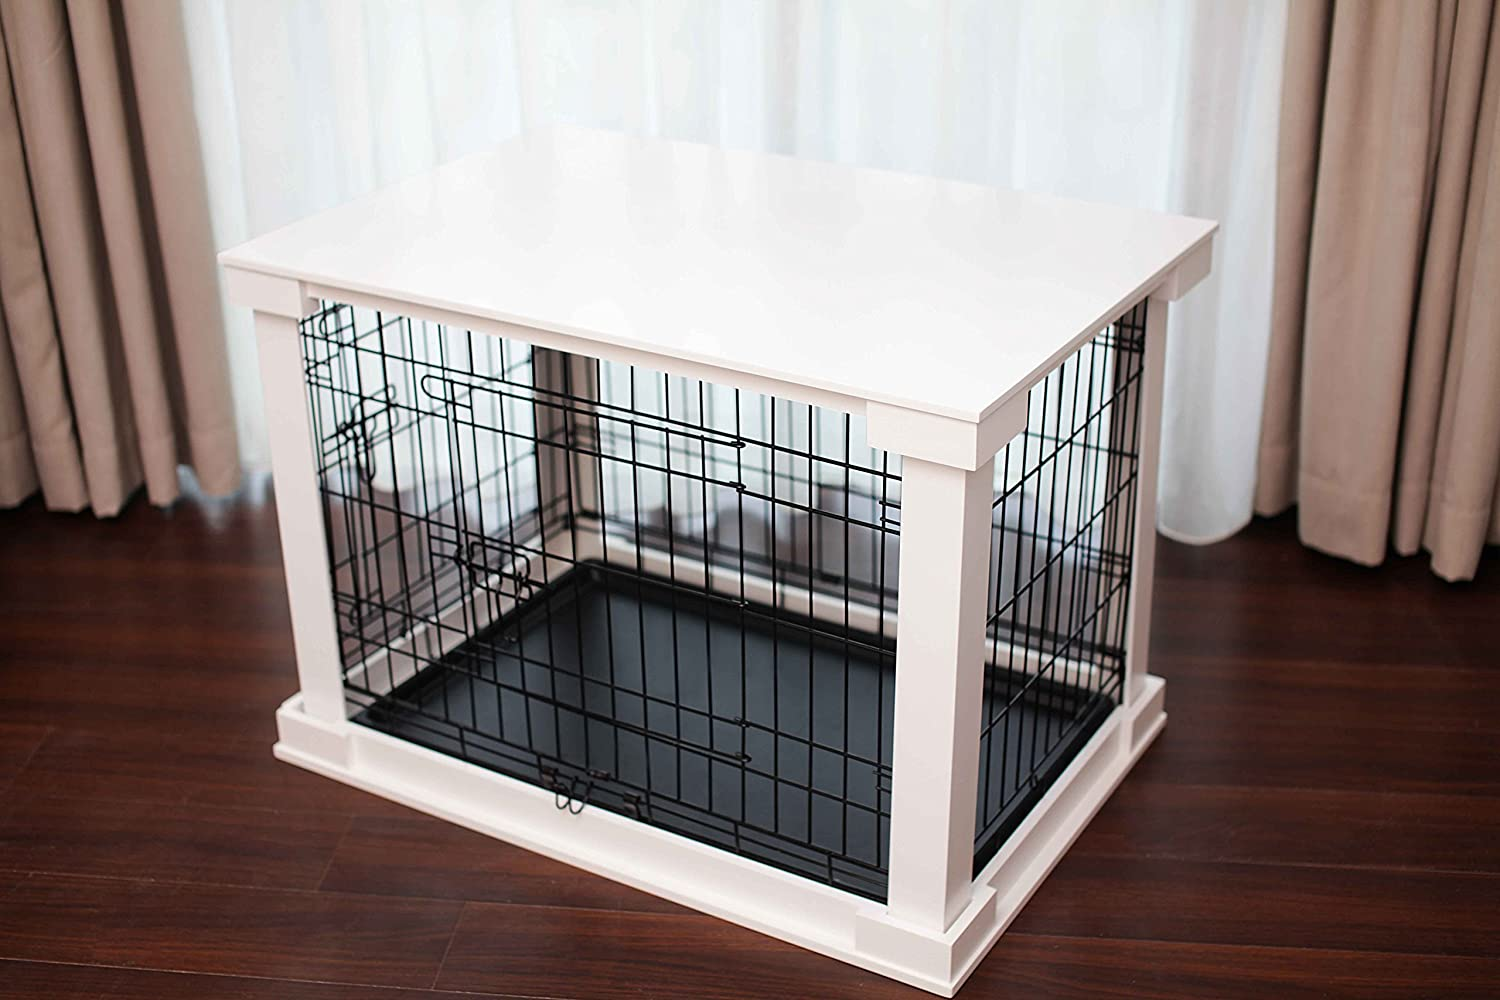 Exceptional Amazon.com : Zoovilla Medium White Cage With Crate Cover : Pet Supplies